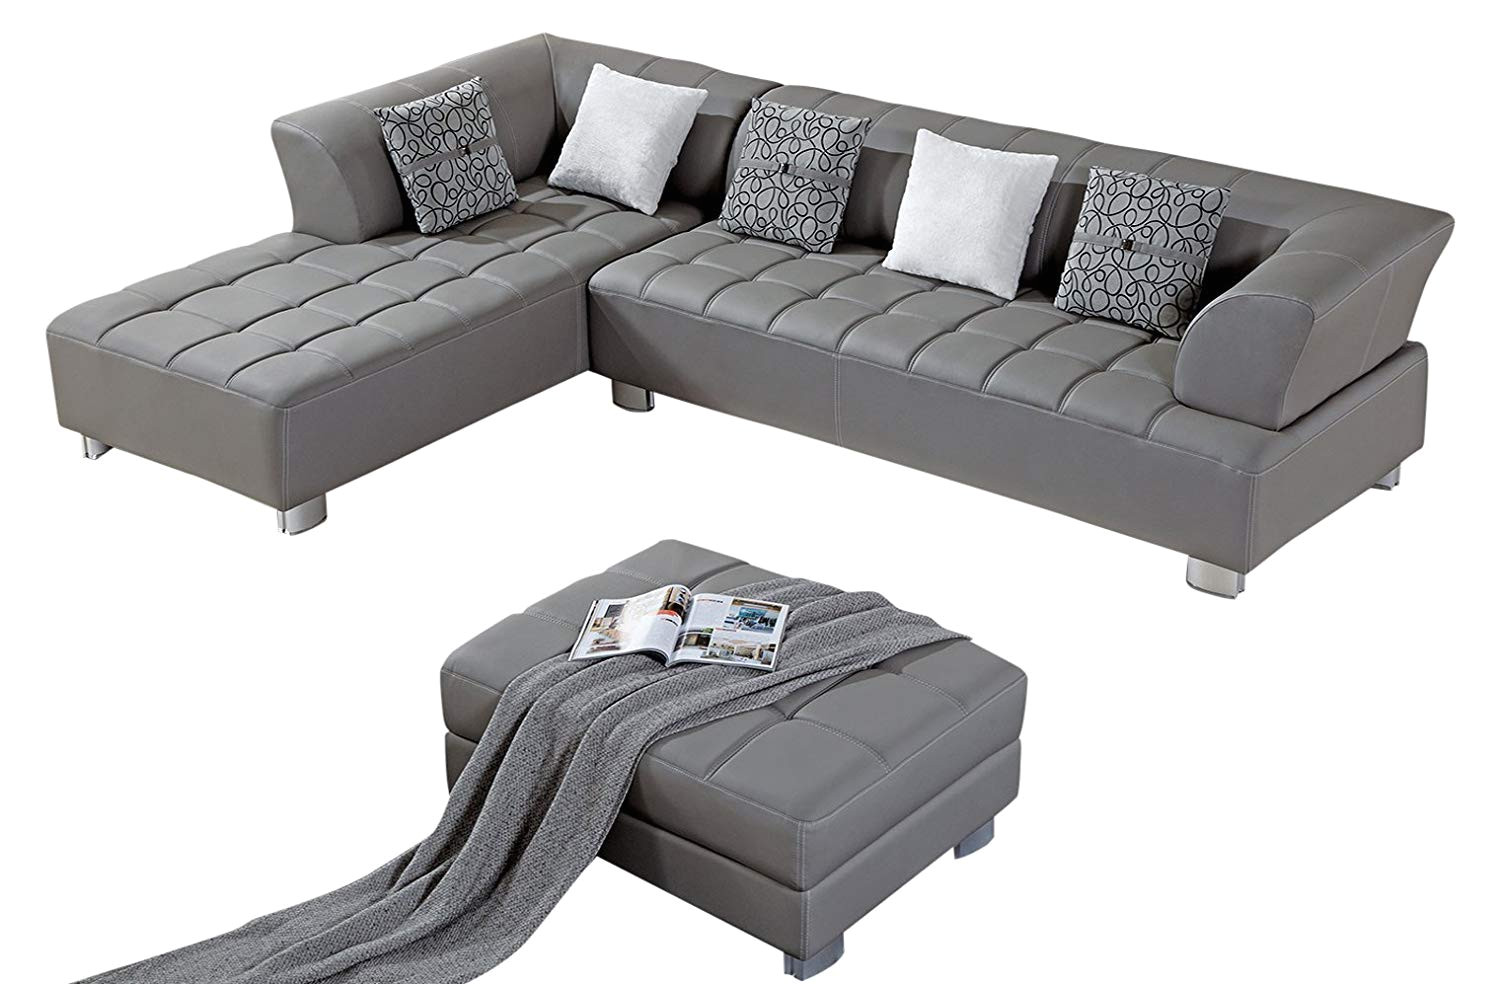 amazon com american eagle furniture aventura collection modern bonded leather tufted sectional sofa with chaise on left and ottoman gray kitchen dining